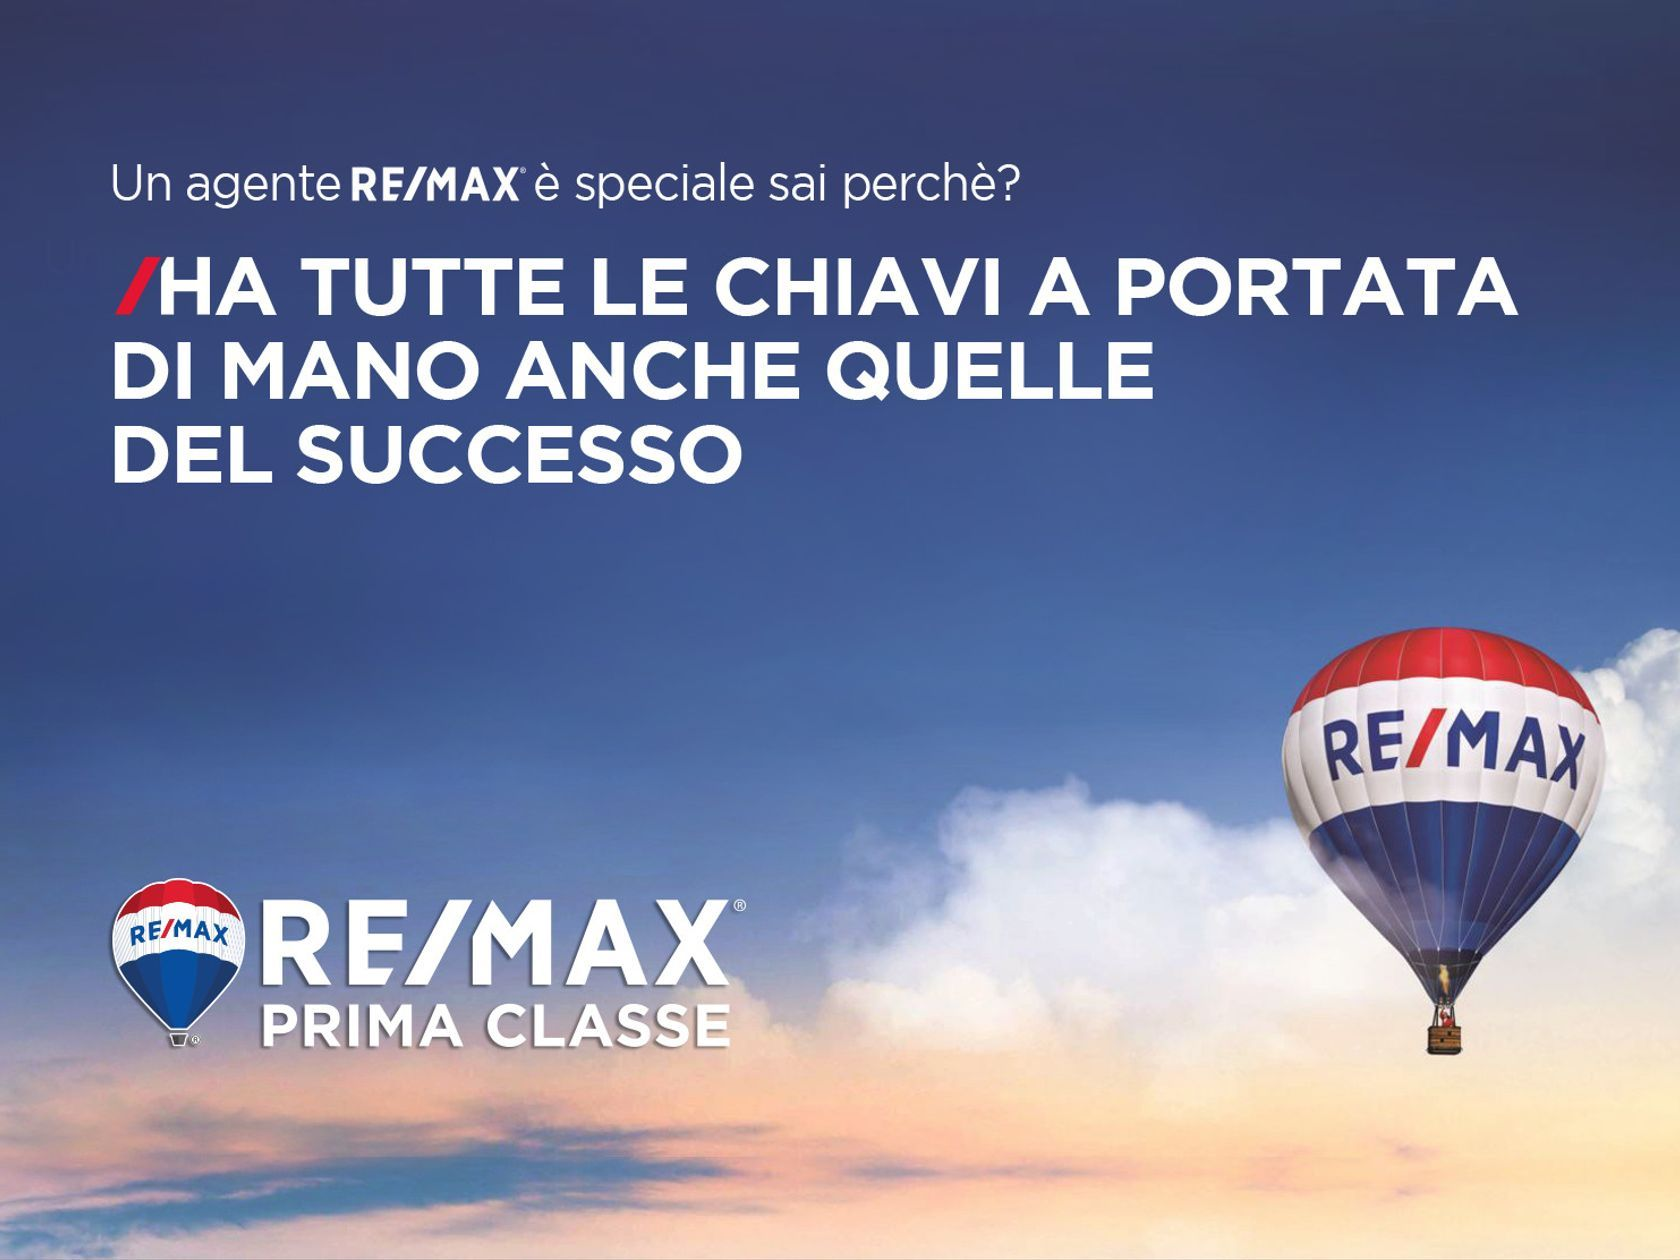 RE/MAX Prima Classe Modica